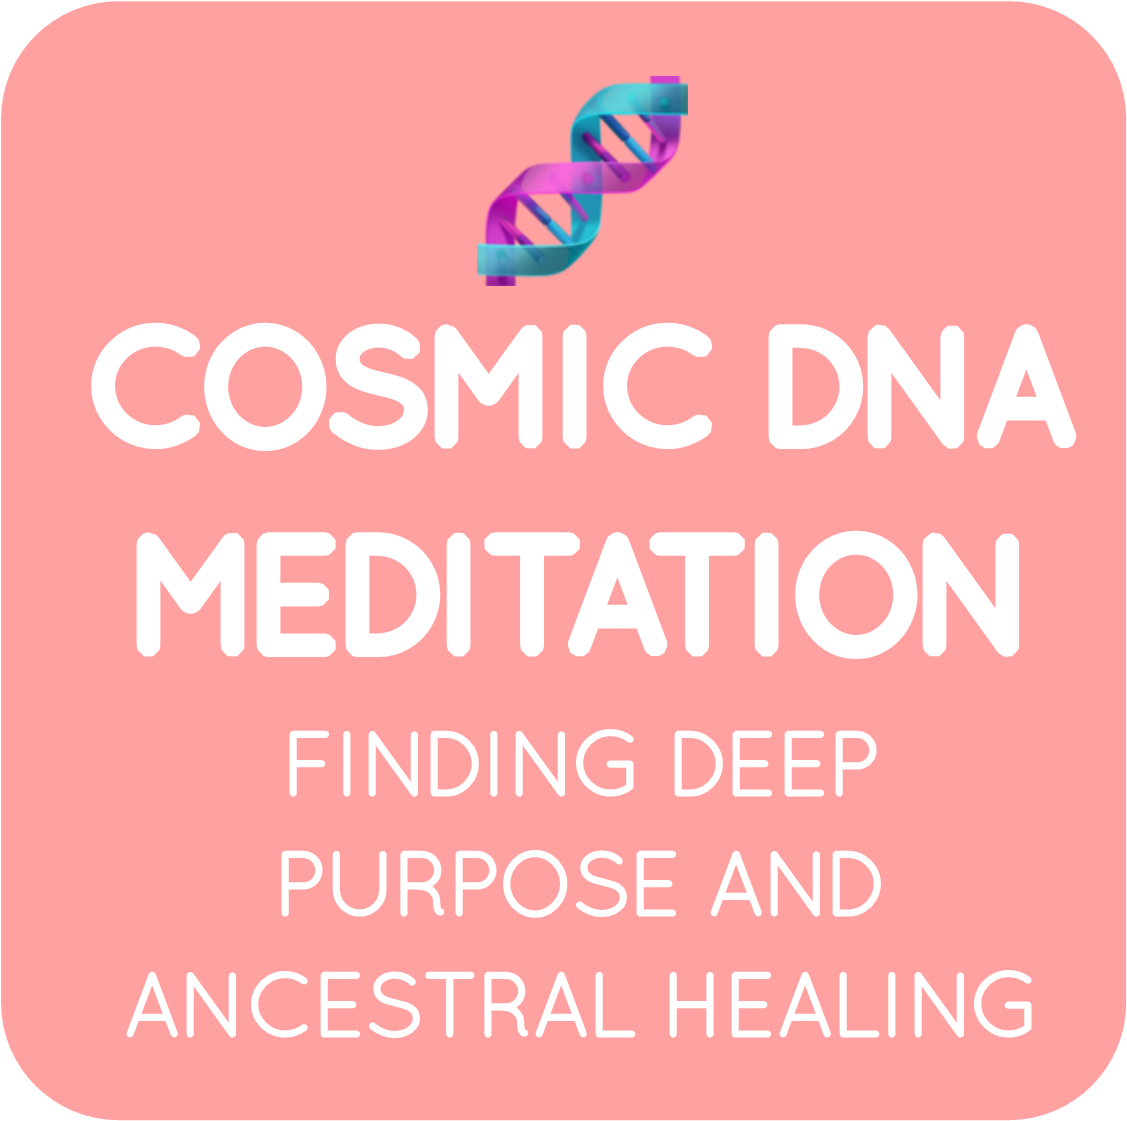 05-cosmic dna meditation visualization.png